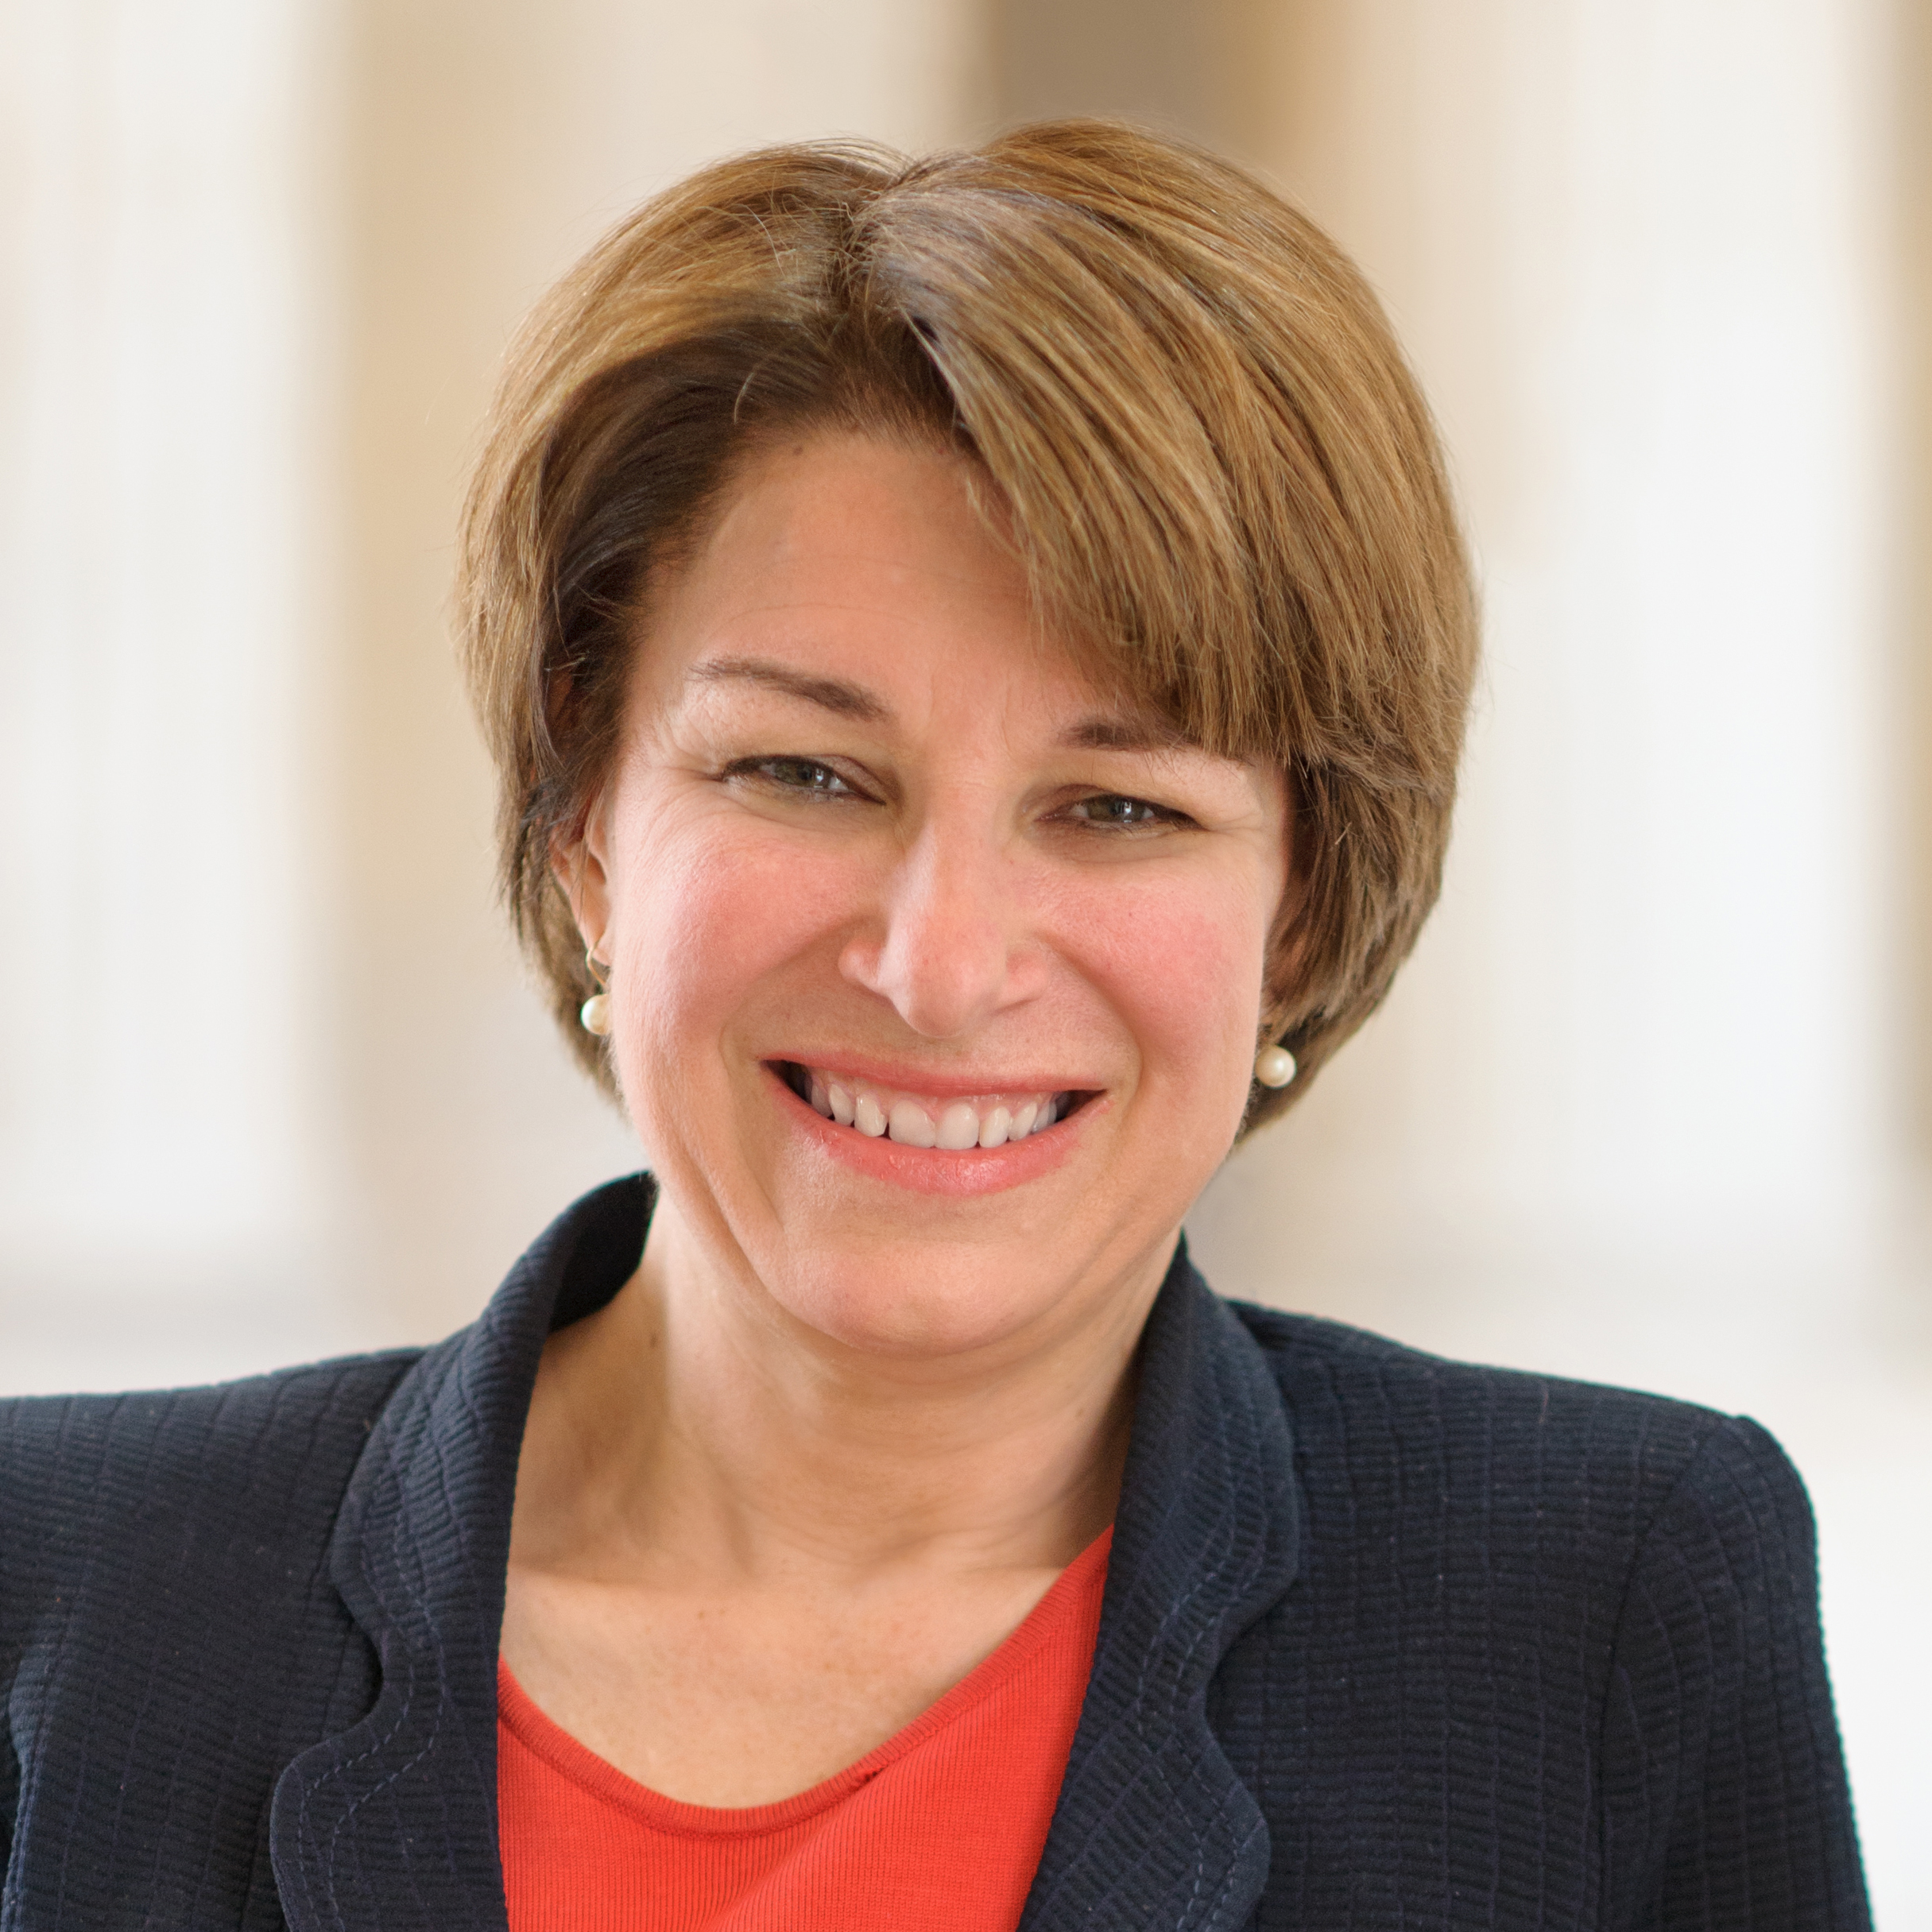 The Honorable Amy Klobuchar